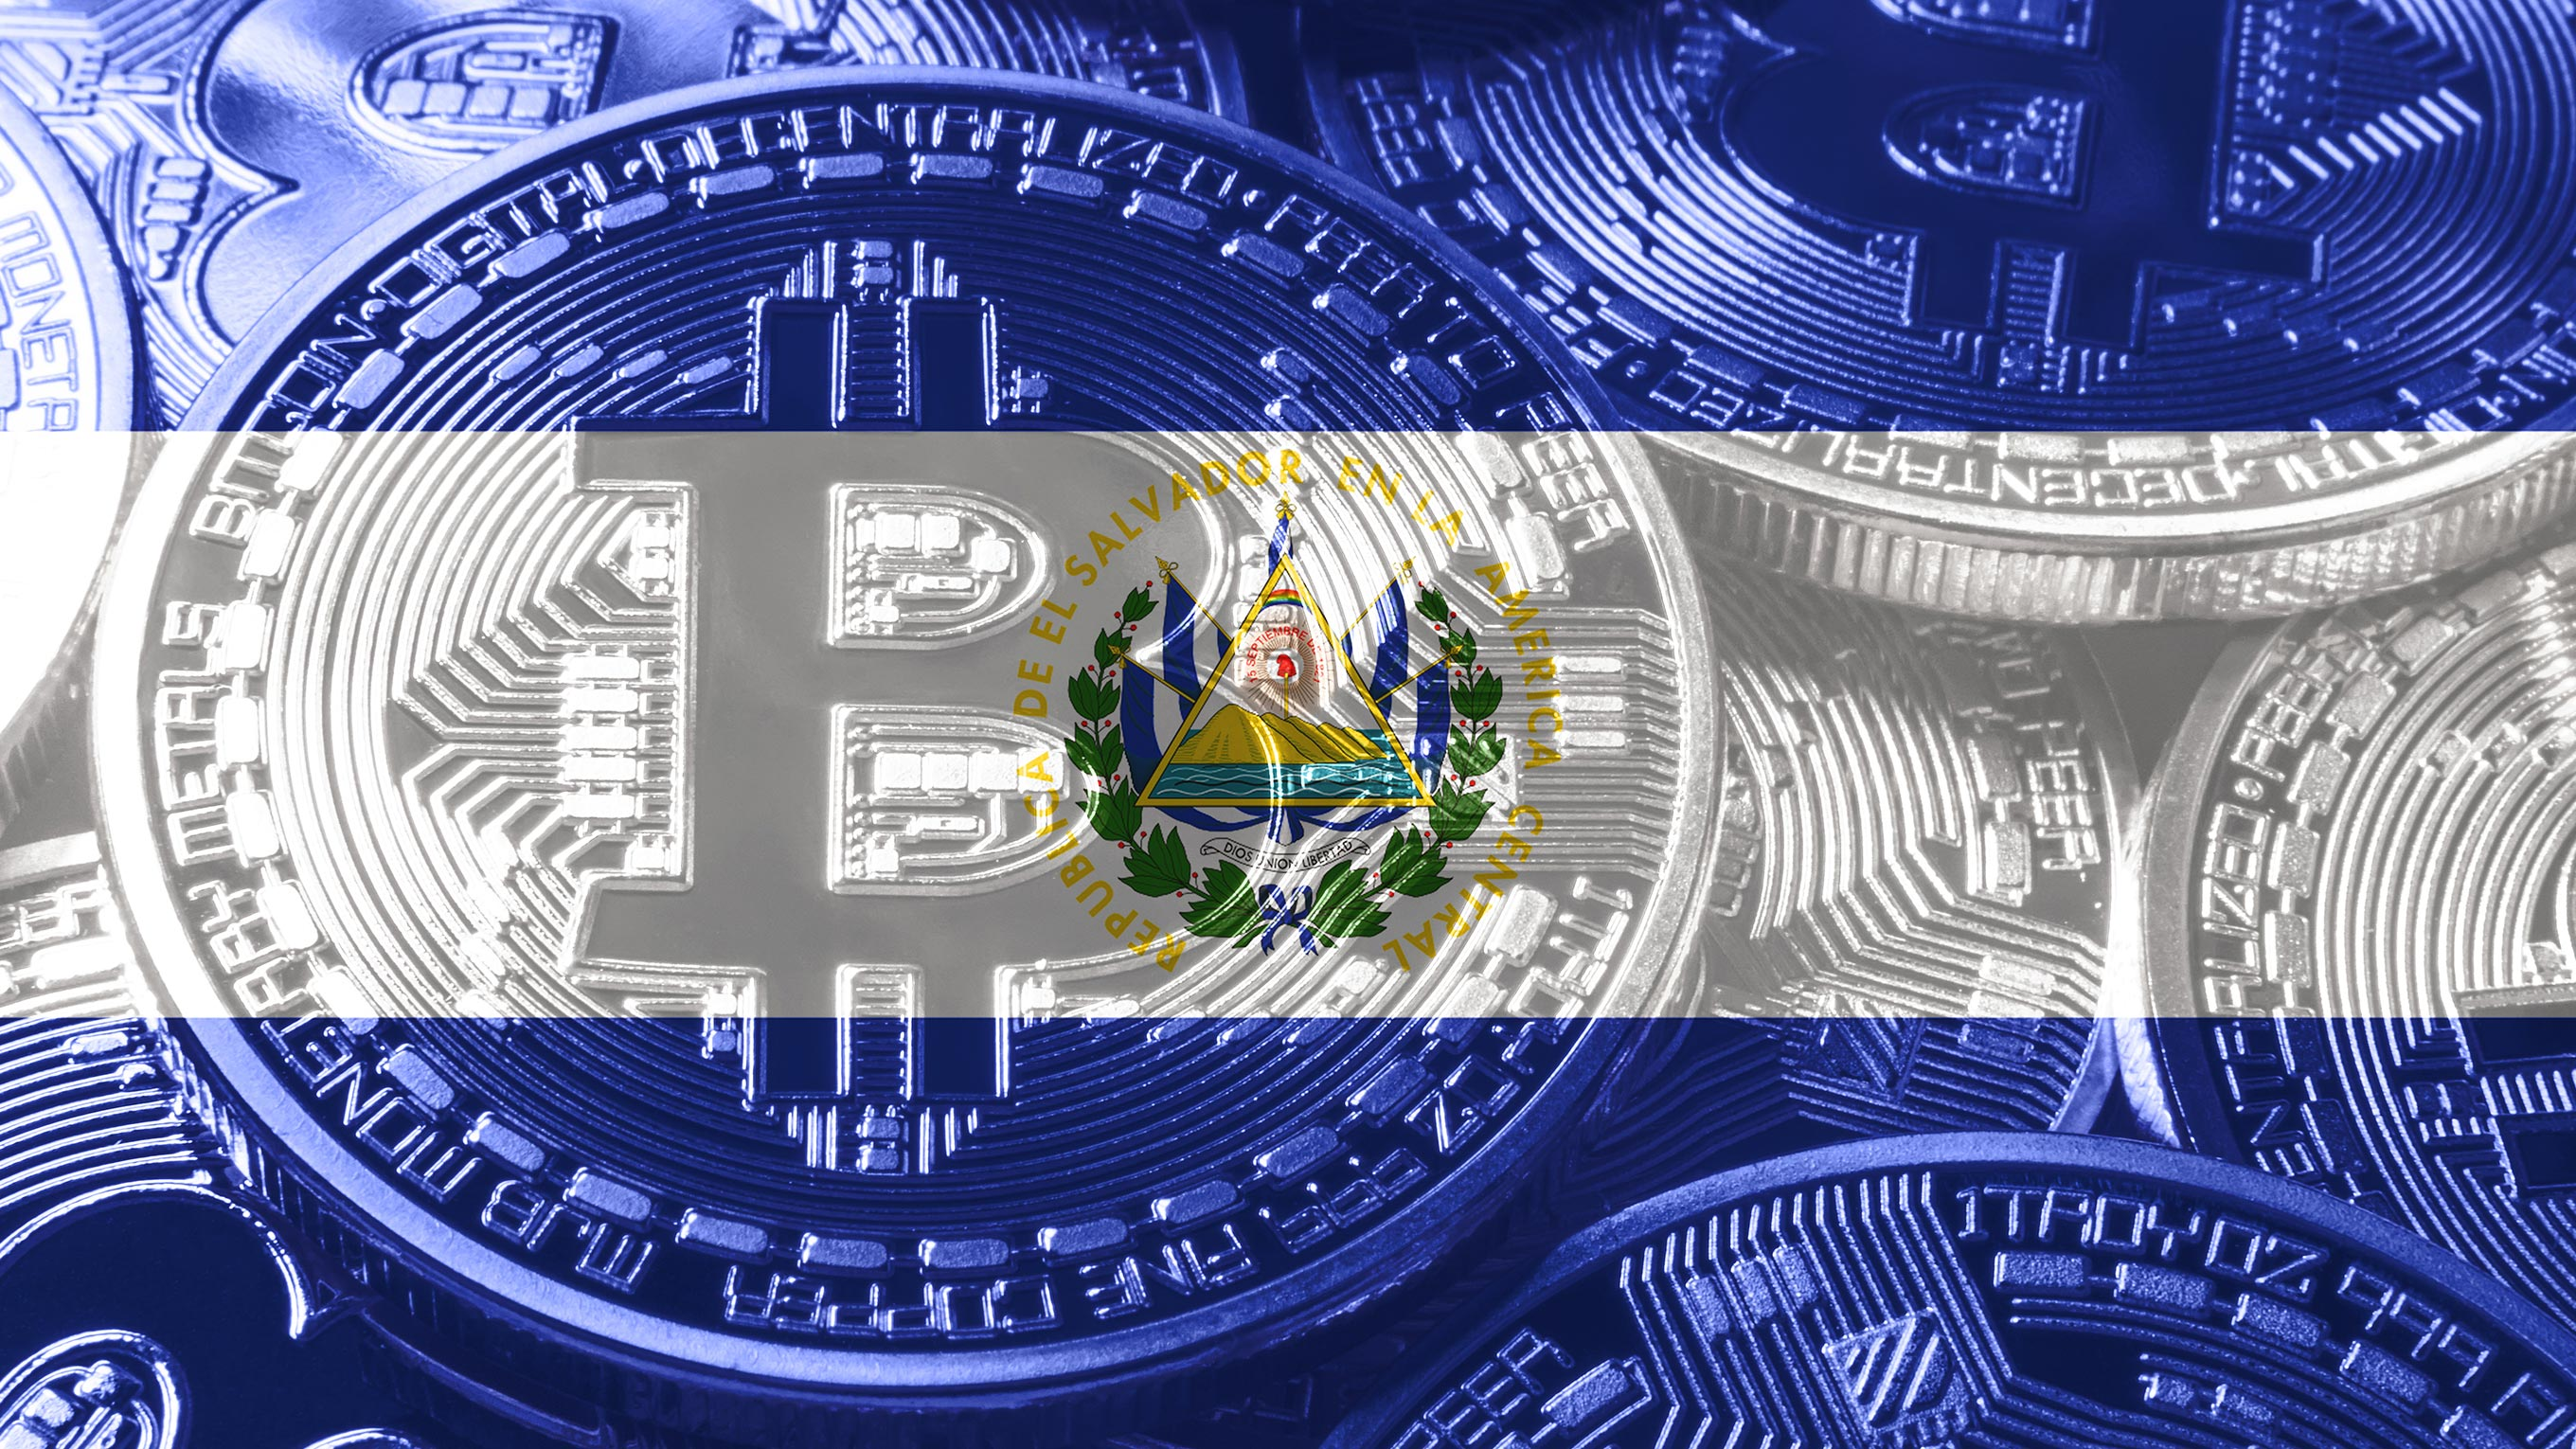 IMF takes swipe at El Salvador's use of Bitcoin as legal currency